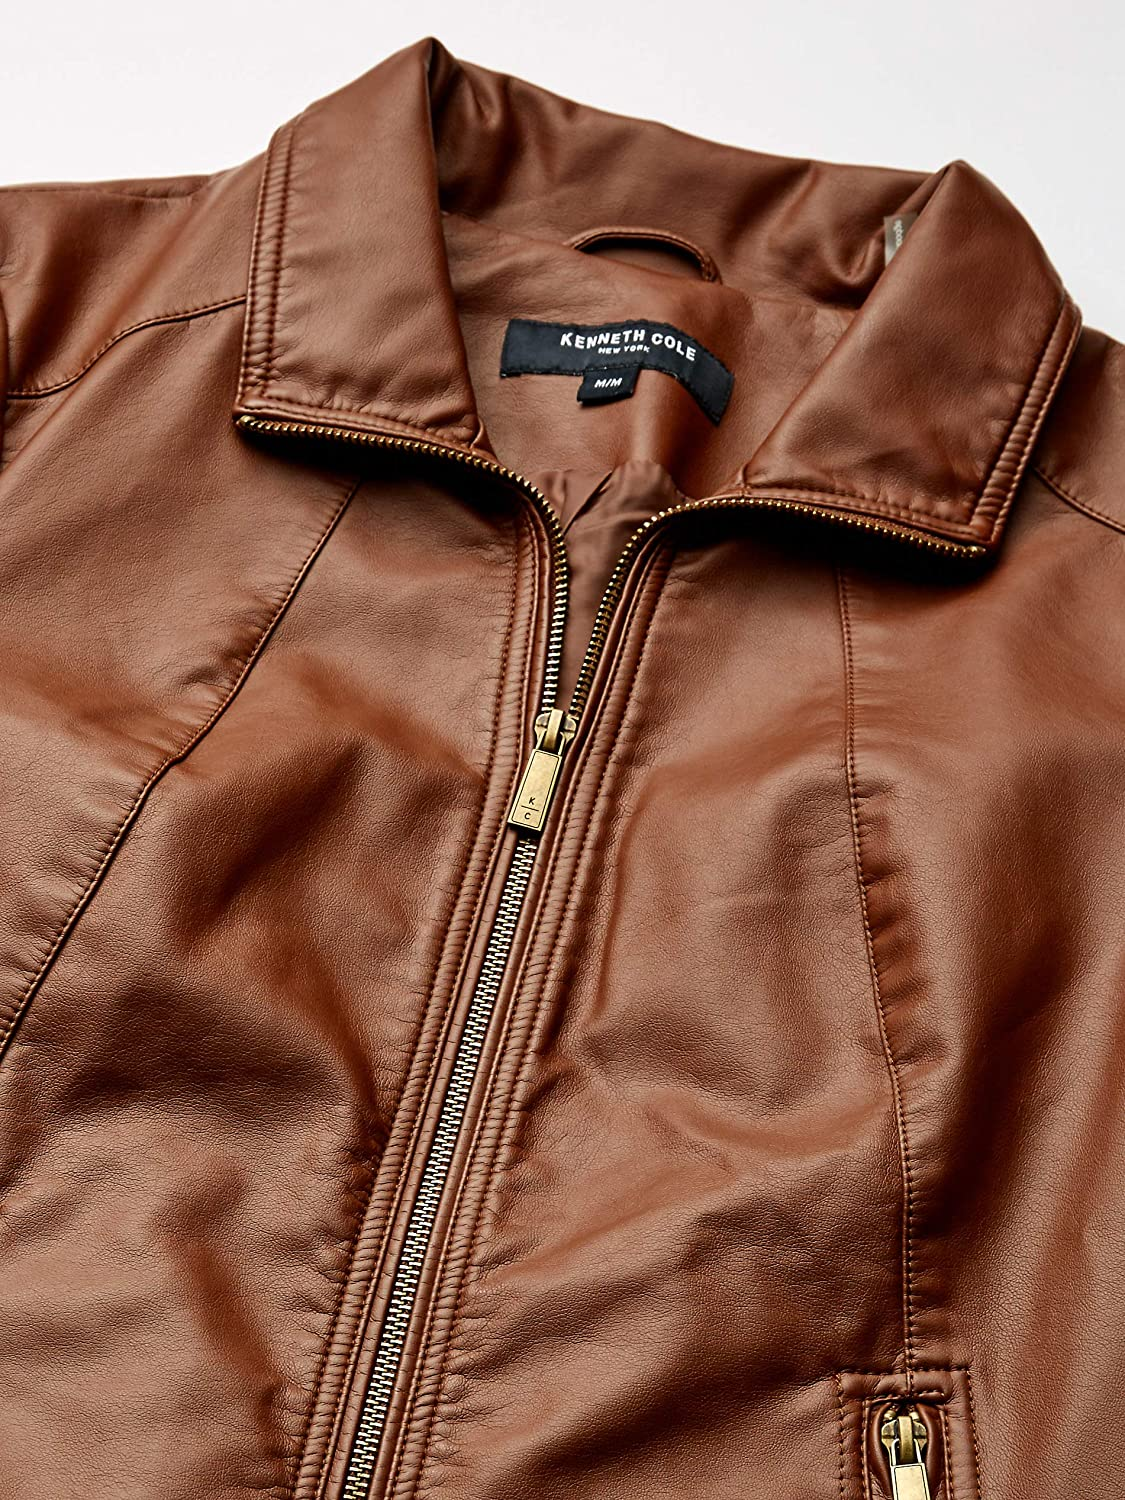 Kenneth Cole New York Womens Zip Front Faux Leather JKT Faux-Leather Jacket